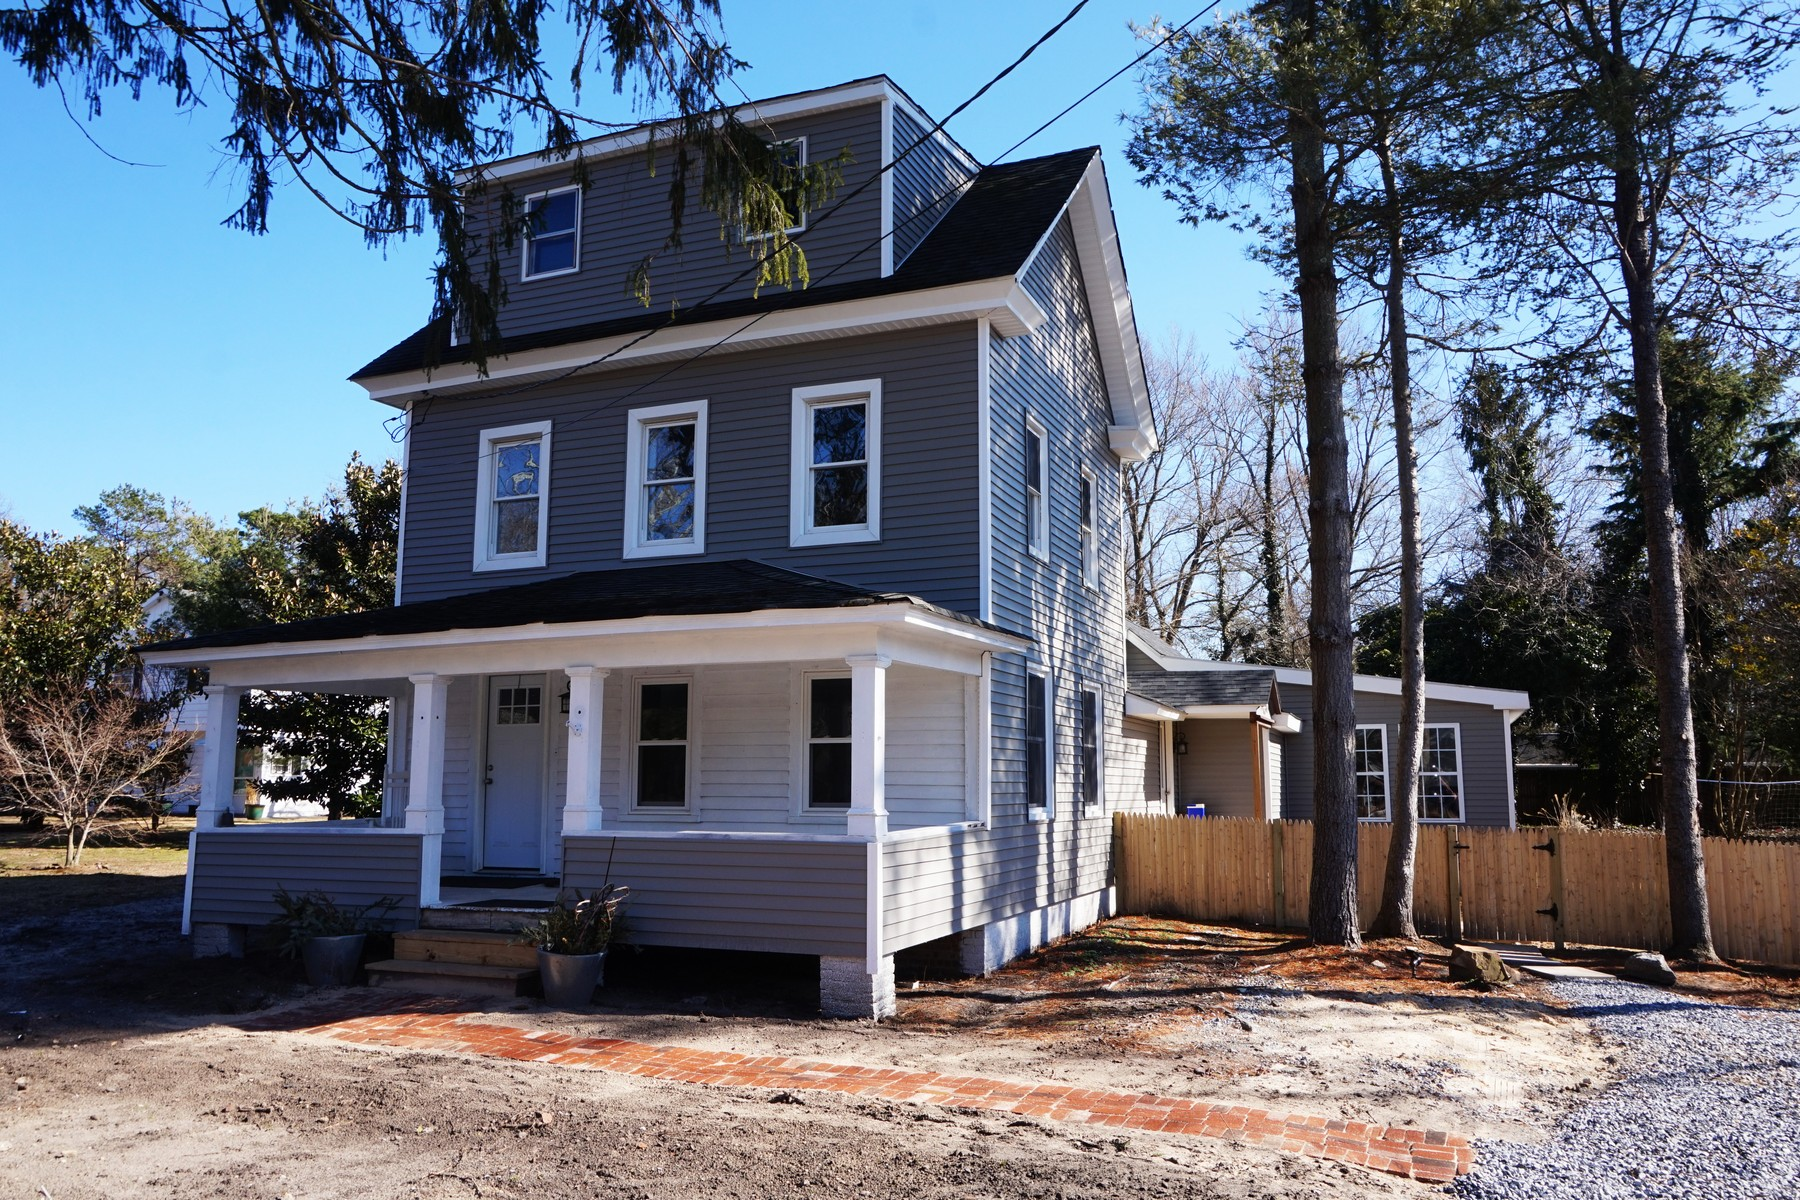 Single Family Home for Sale at Renovated Single Family Home 1143 S Shore Road, Marmora, New Jersey, 08223 United States